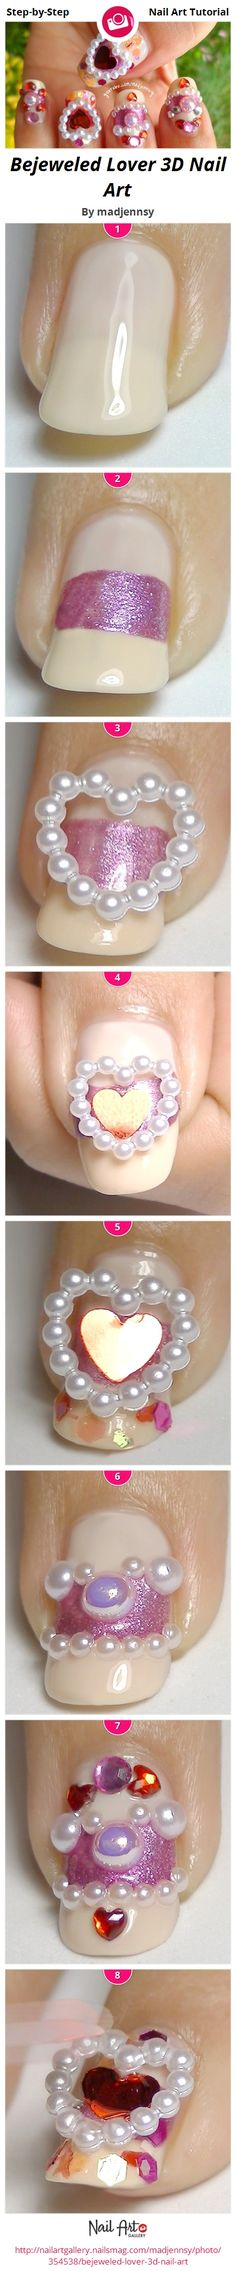 Bejeweled Lover 3D Nail Art by madjennsy from Nail Art Gallery nail art tutorials, nail arts, nail design, 3d nails, art nails